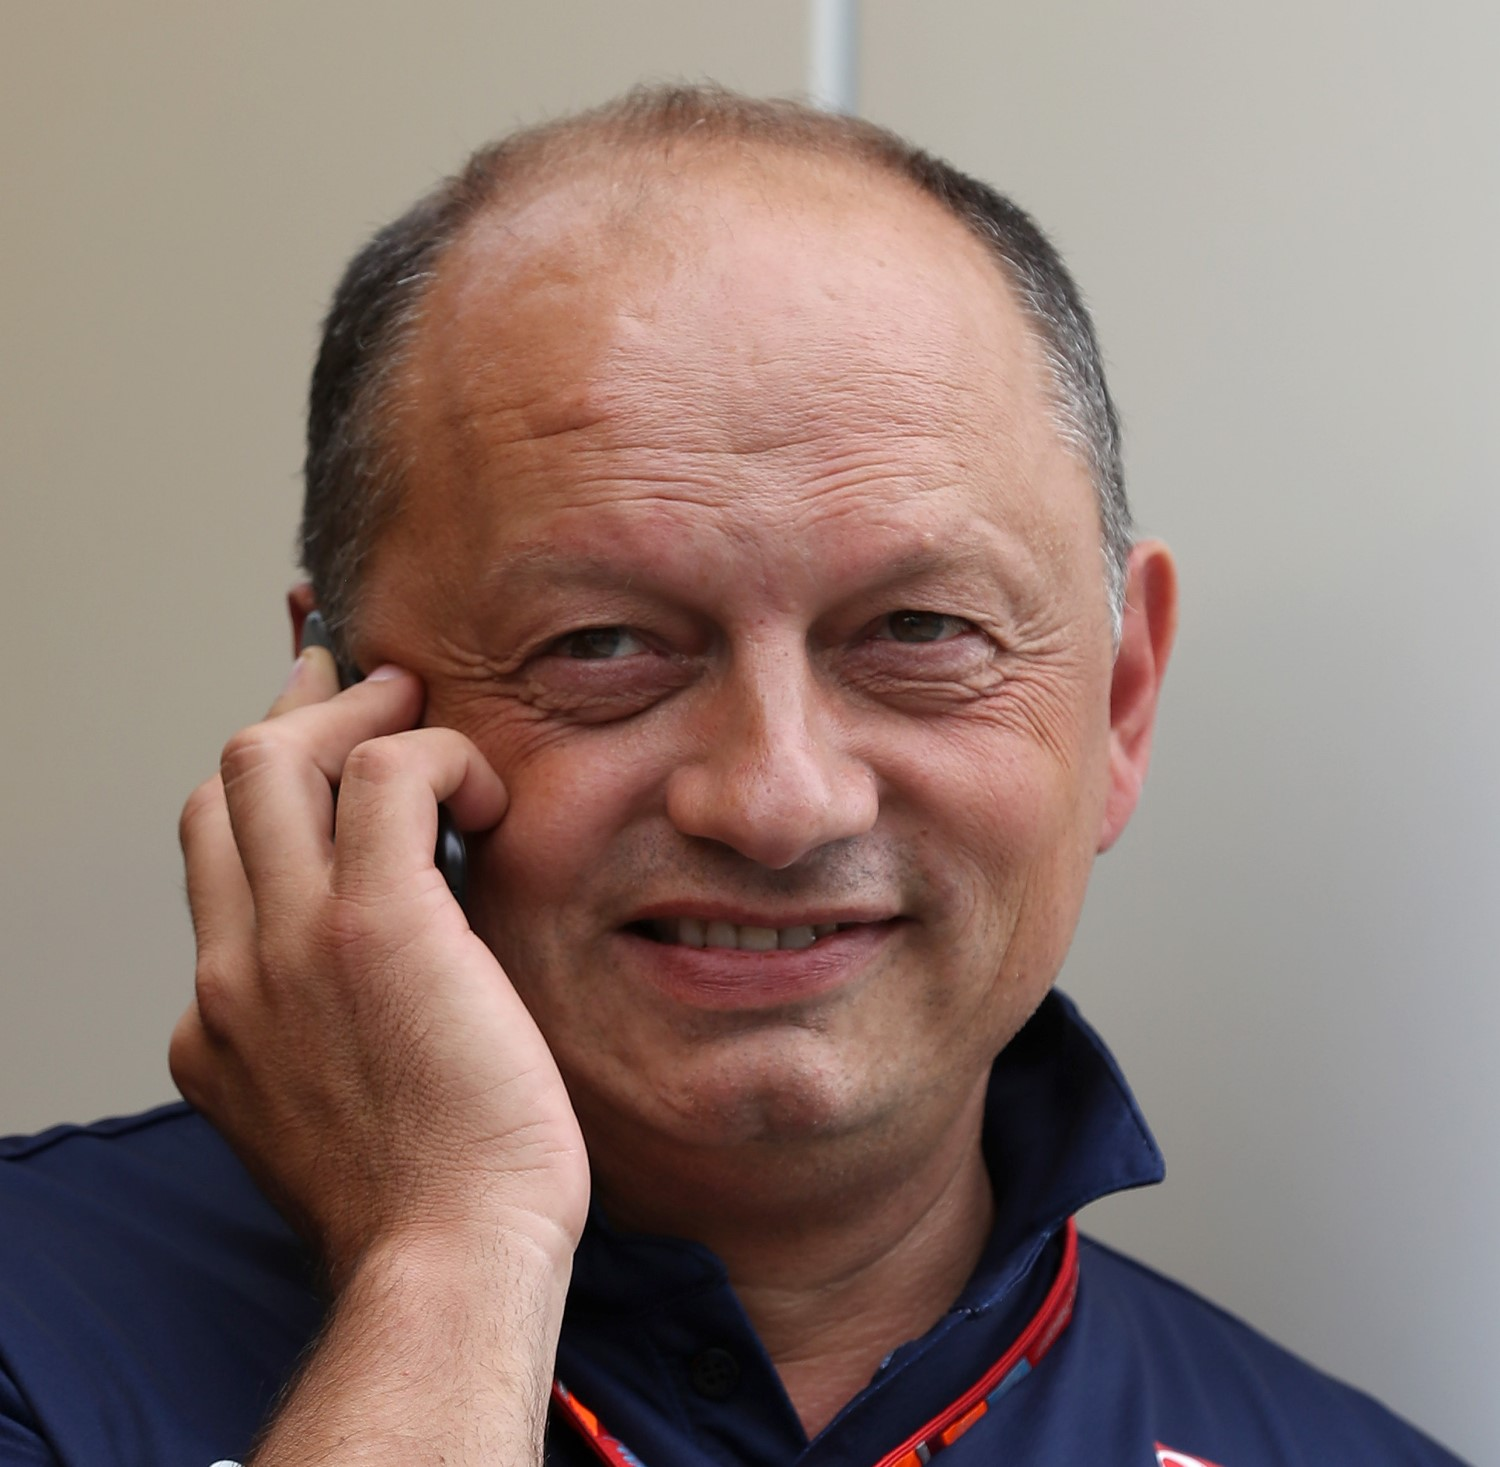 On phone with Ferrari trying to get the latest engines